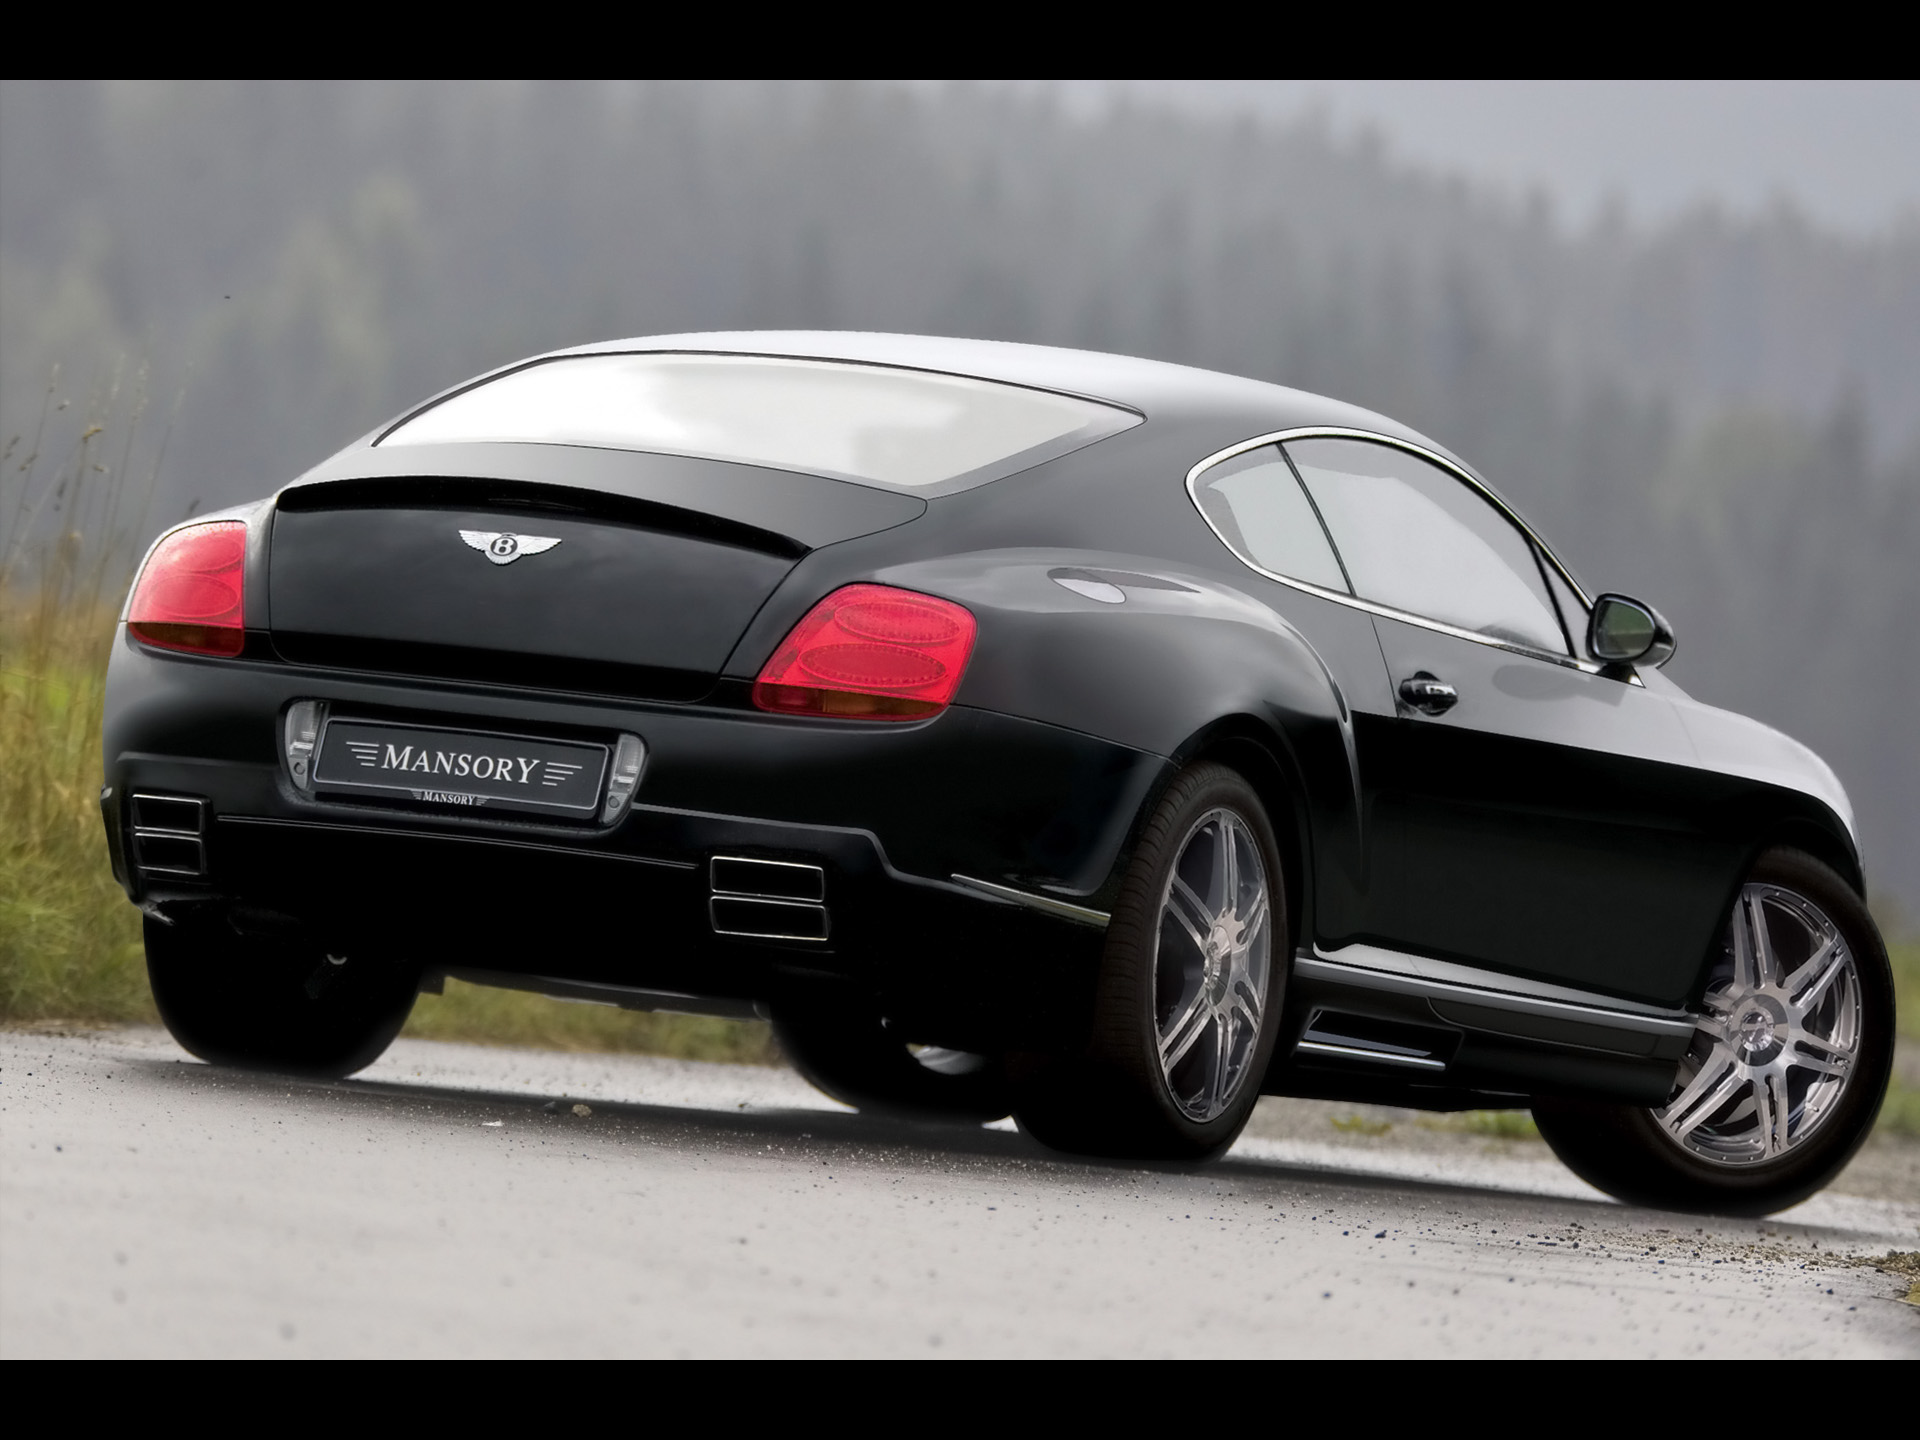 Mansory Bentley Continental GT photo 48520